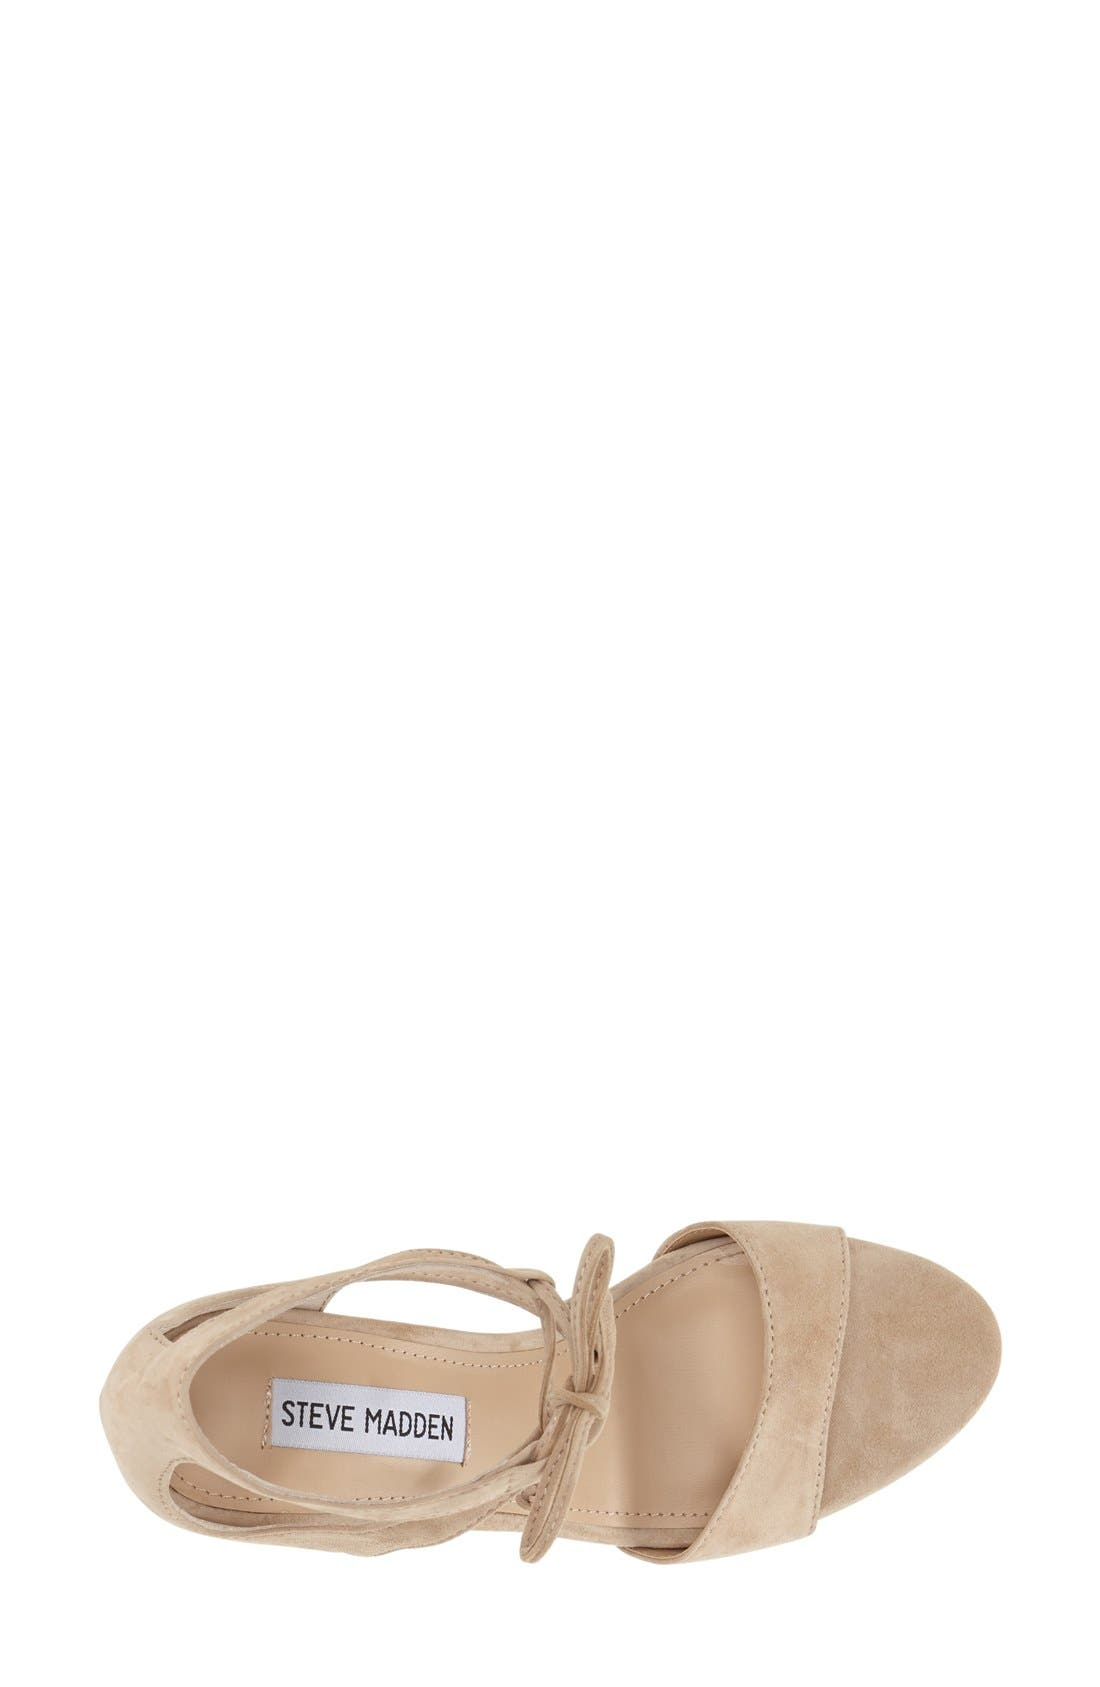 'Salsaa' Lace-Up Ankle Strap Sandal,                             Alternate thumbnail 8, color,